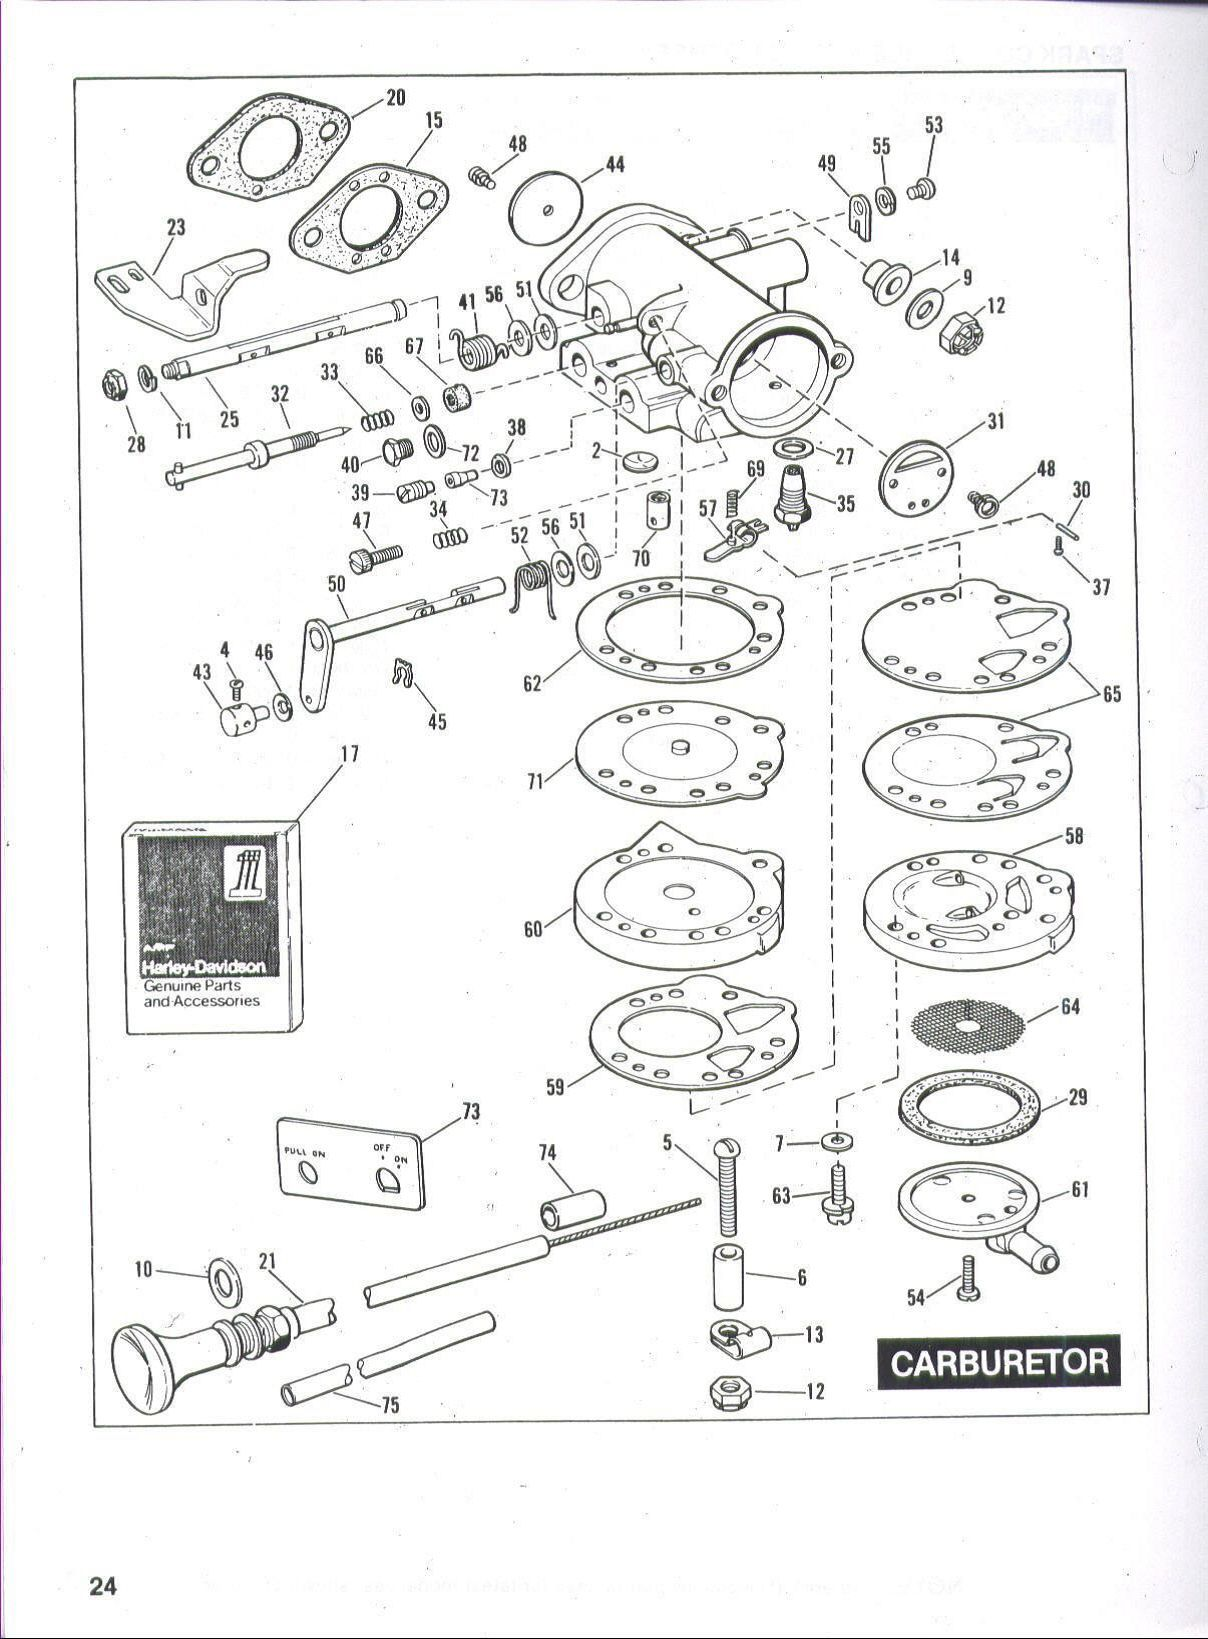 medium resolution of harley davidson golf cart carburetor diagram